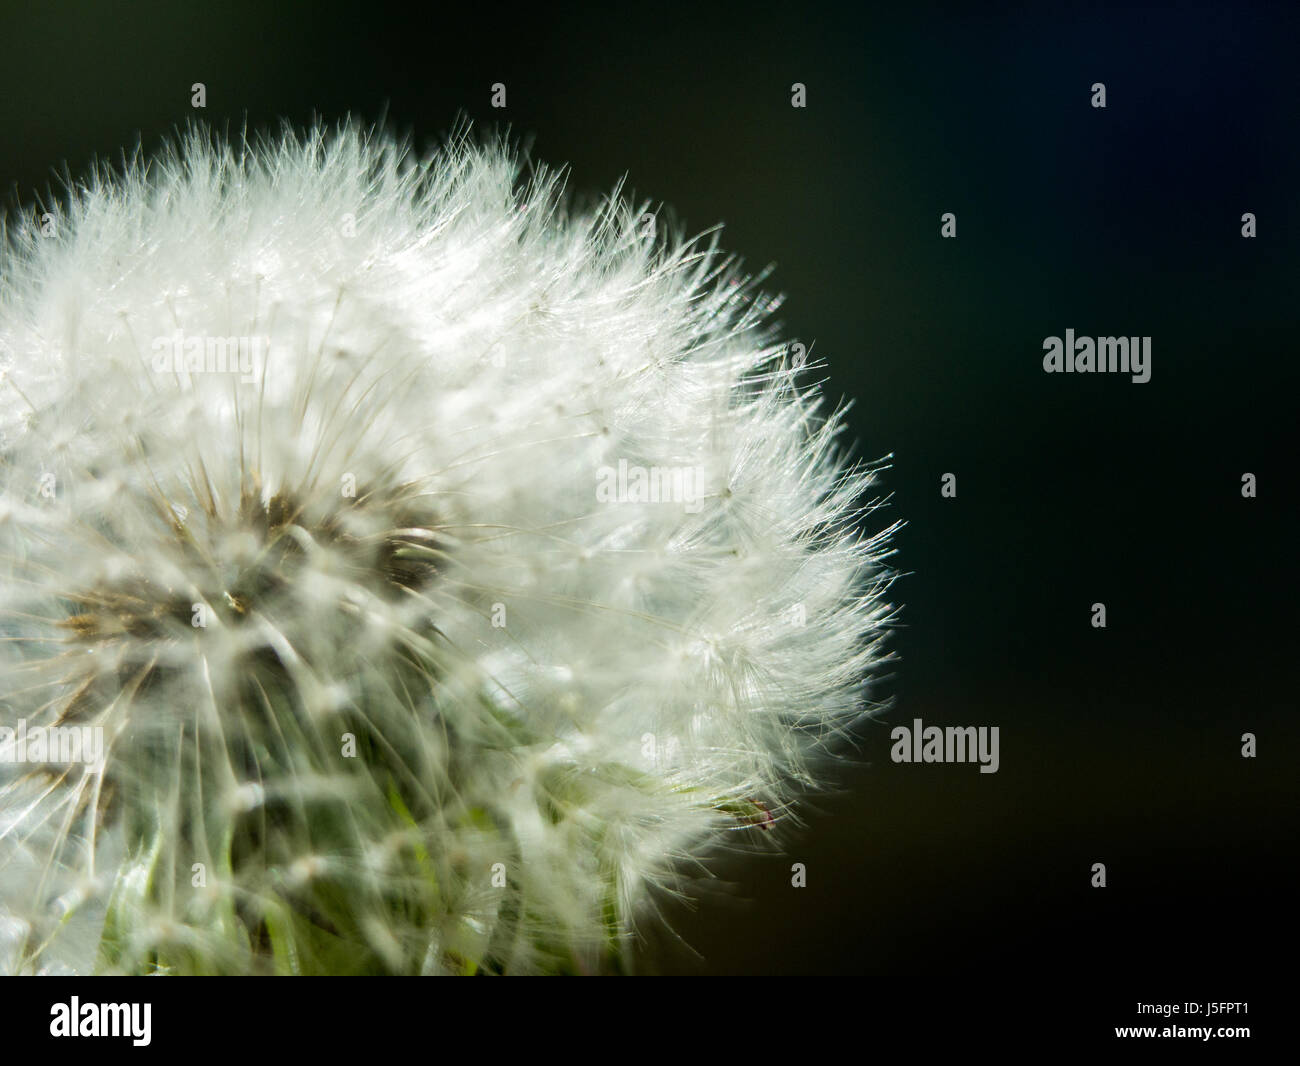 Dandelion blowball against a dark background, the concept of spring flowering lightness and brittleness. - Stock Image